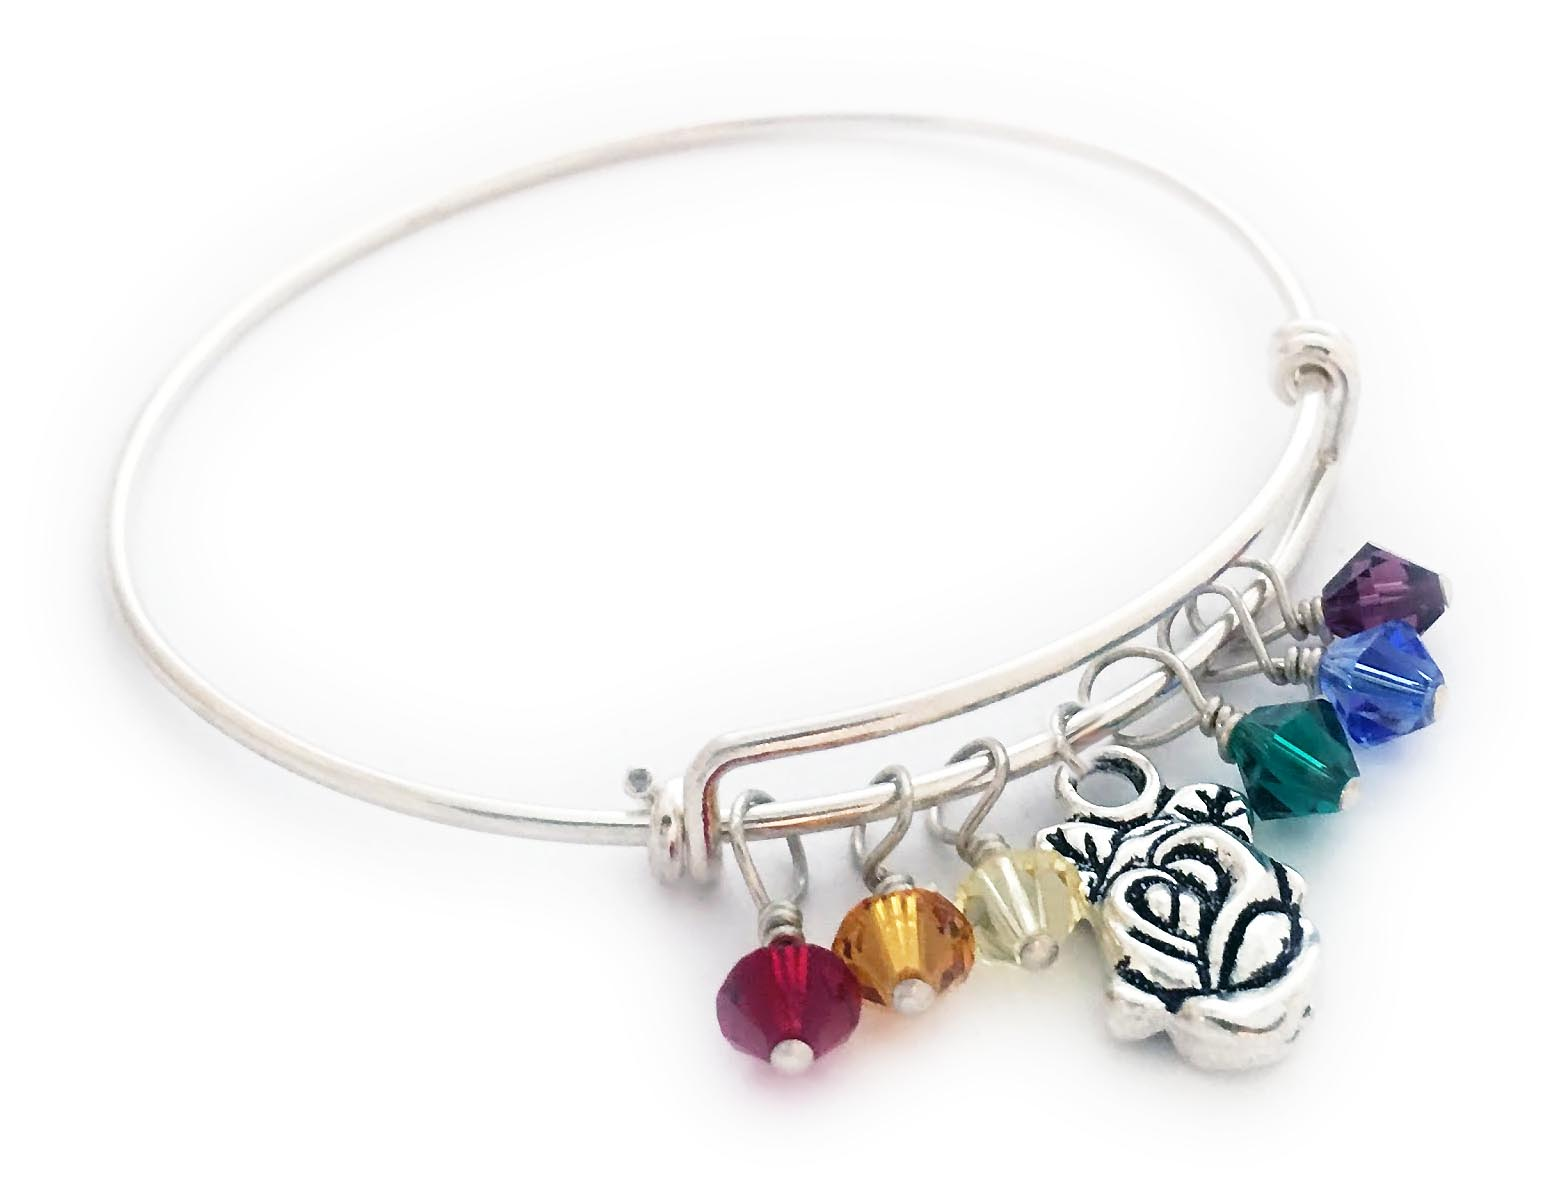 Rose Bangle Bracelet with Birthstones  Shown with a free Rose charm and 1 free Crystal Birthstone and 5 add-on Crystal Birthstones